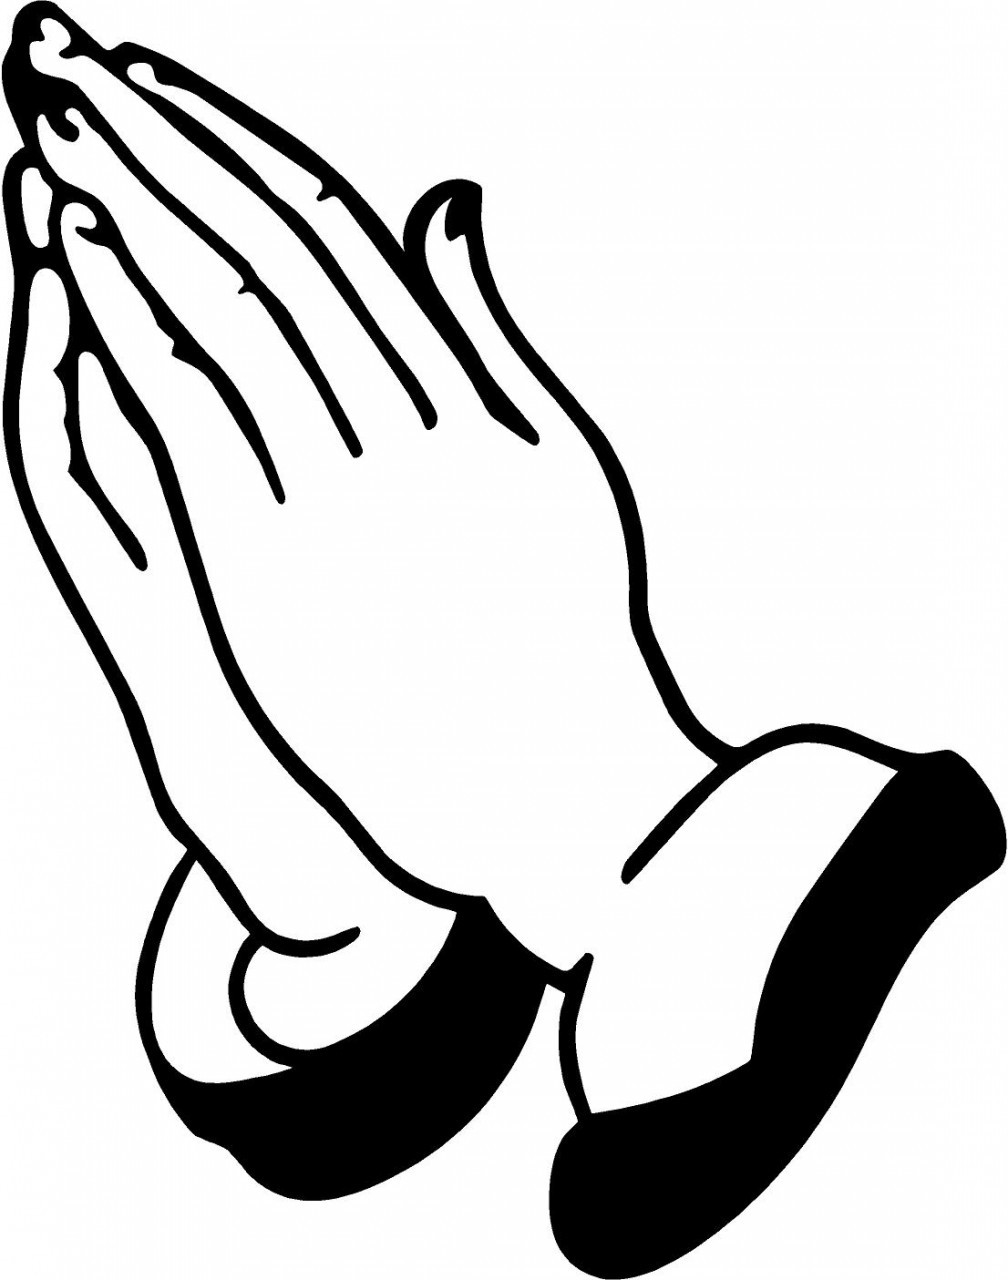 Praying Hands PNG HD Images - 136243